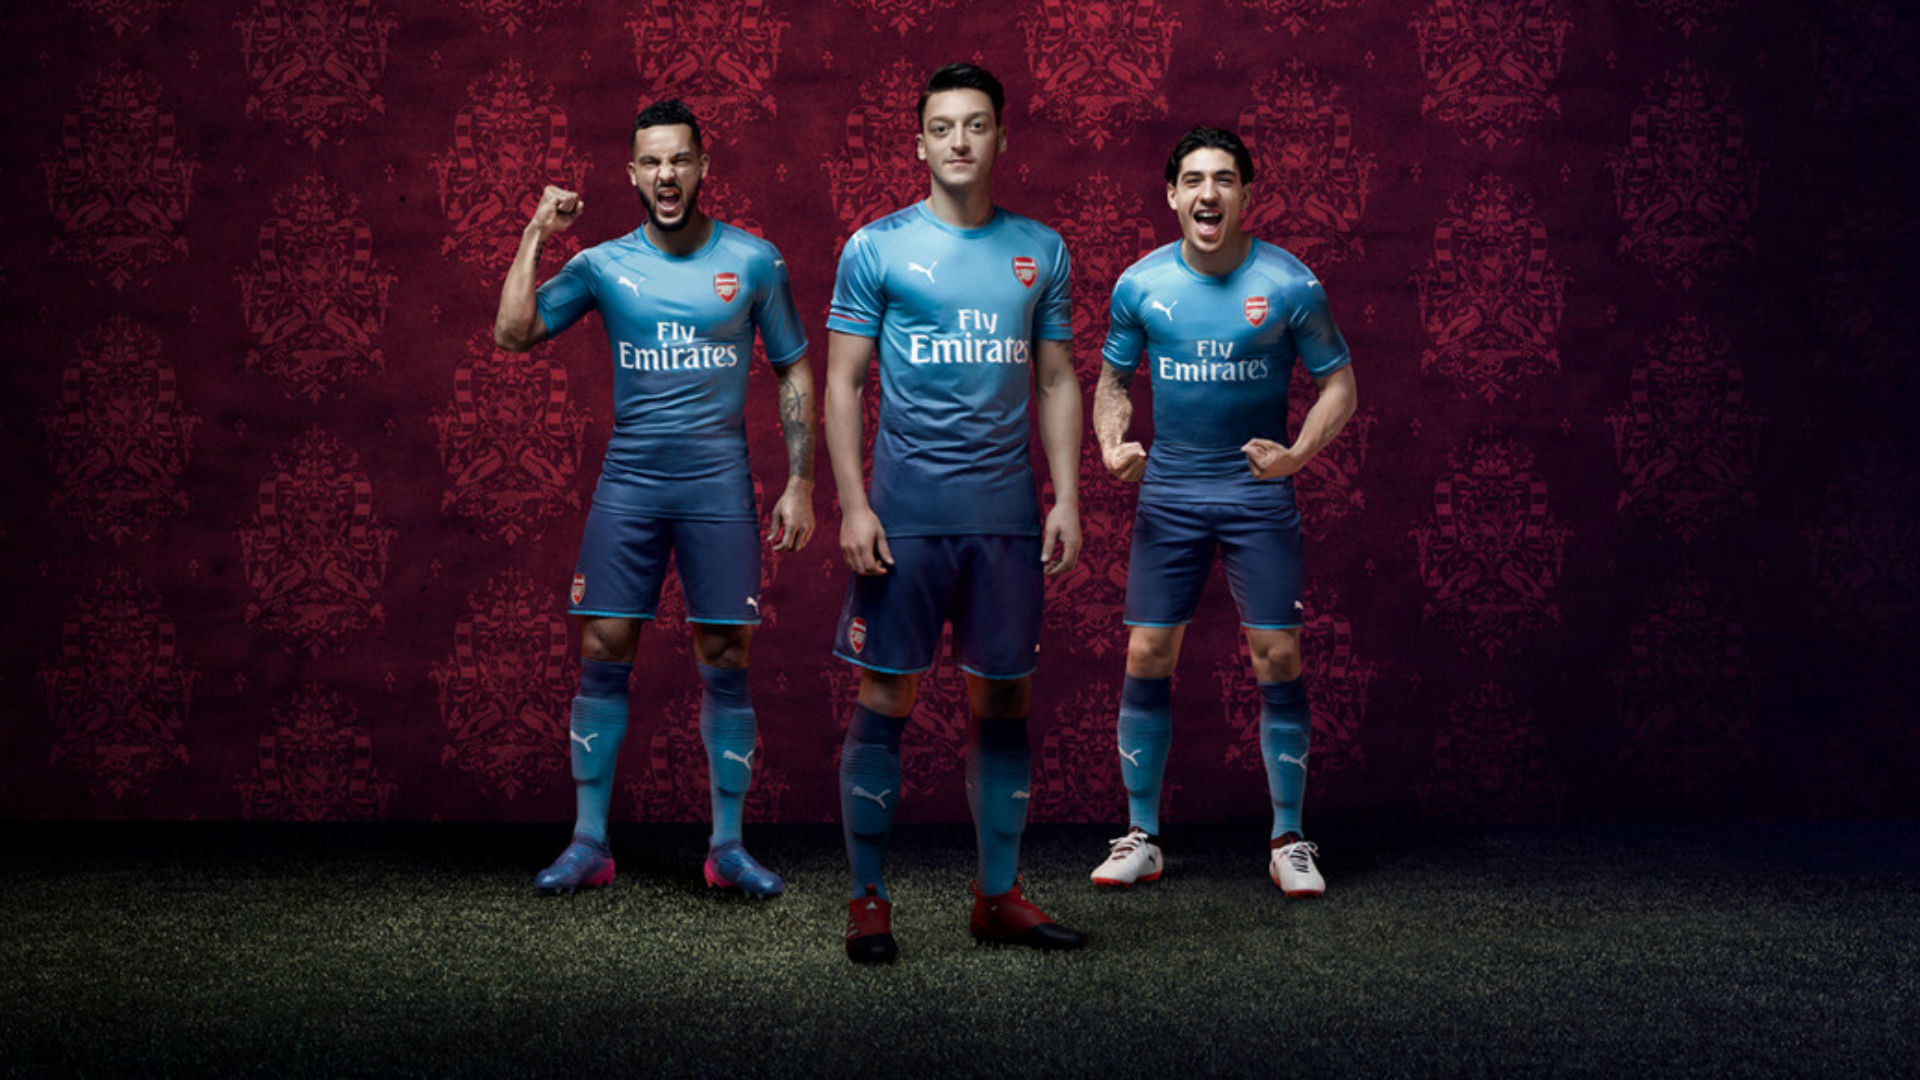 Arsenal Wallpaper 2018 84 Pictures